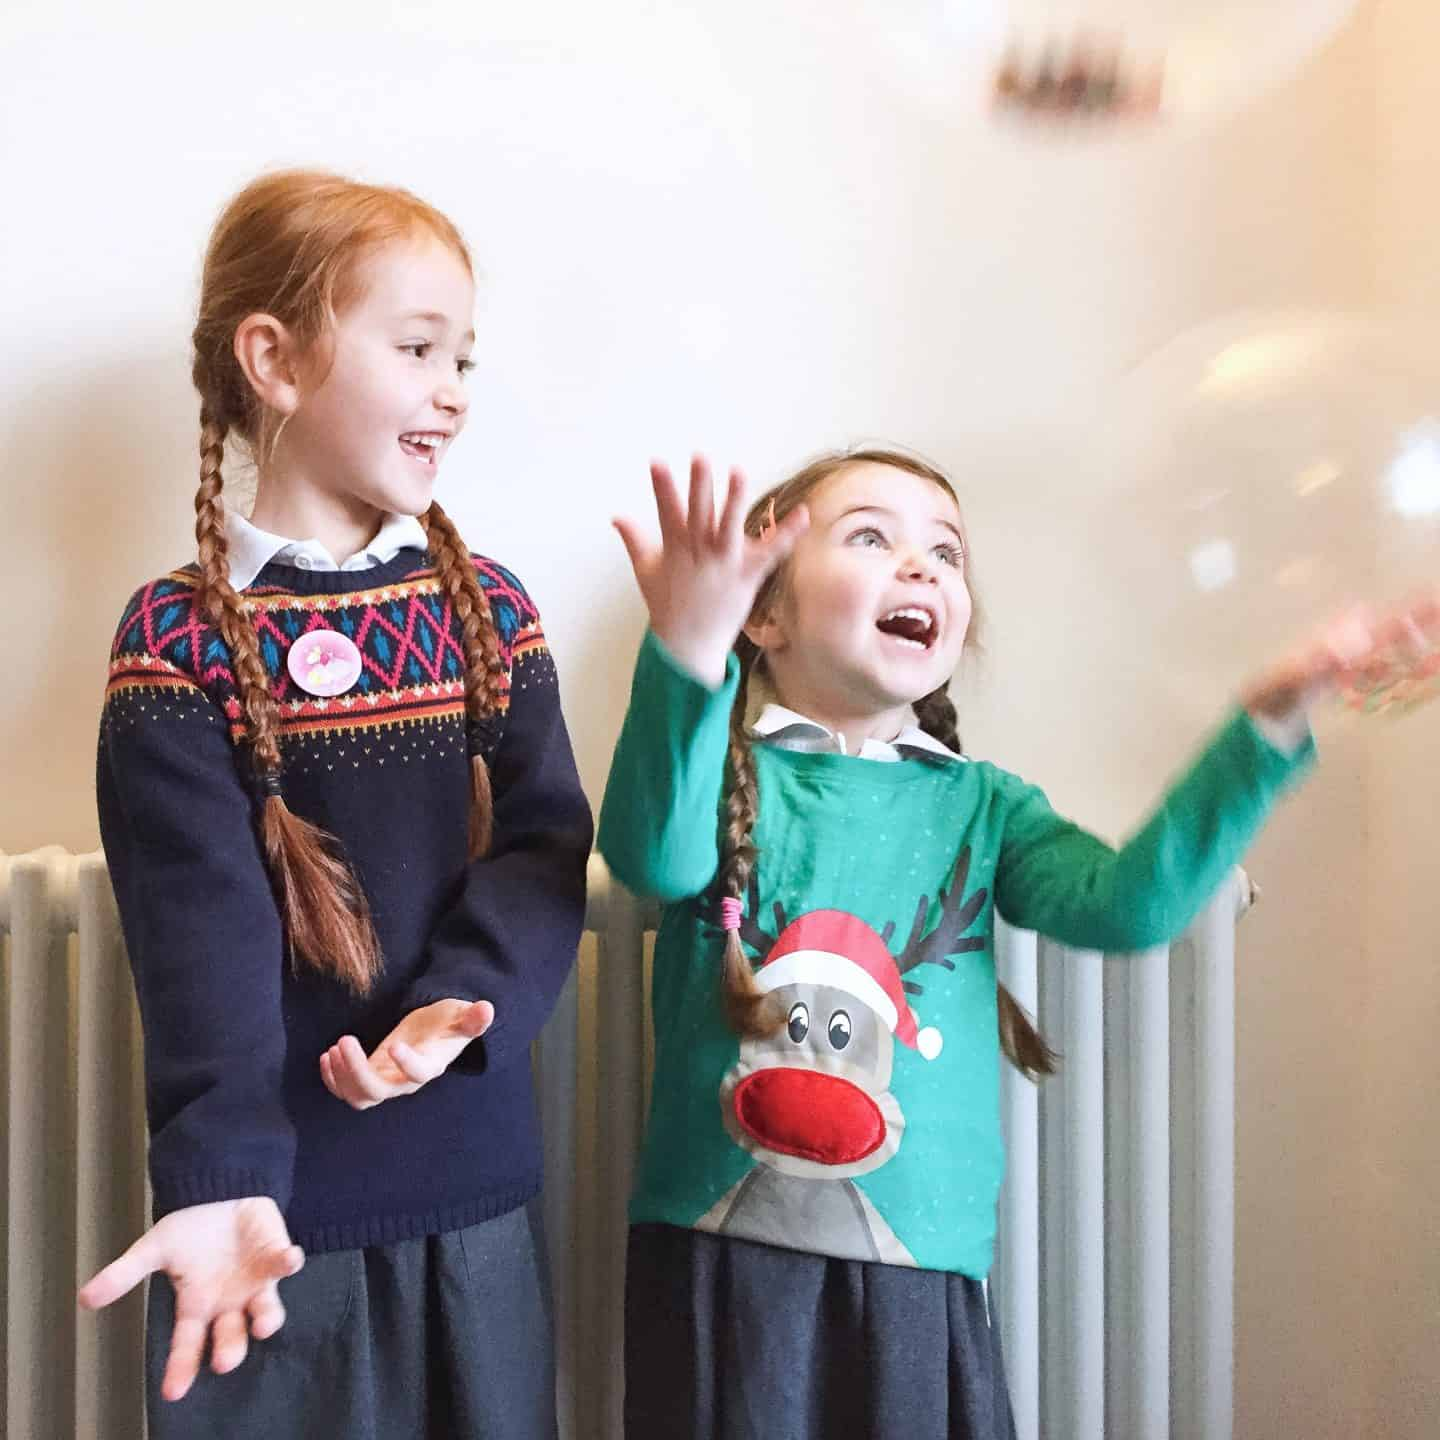 Two girls wearing Christmas jumpers playing with balloons